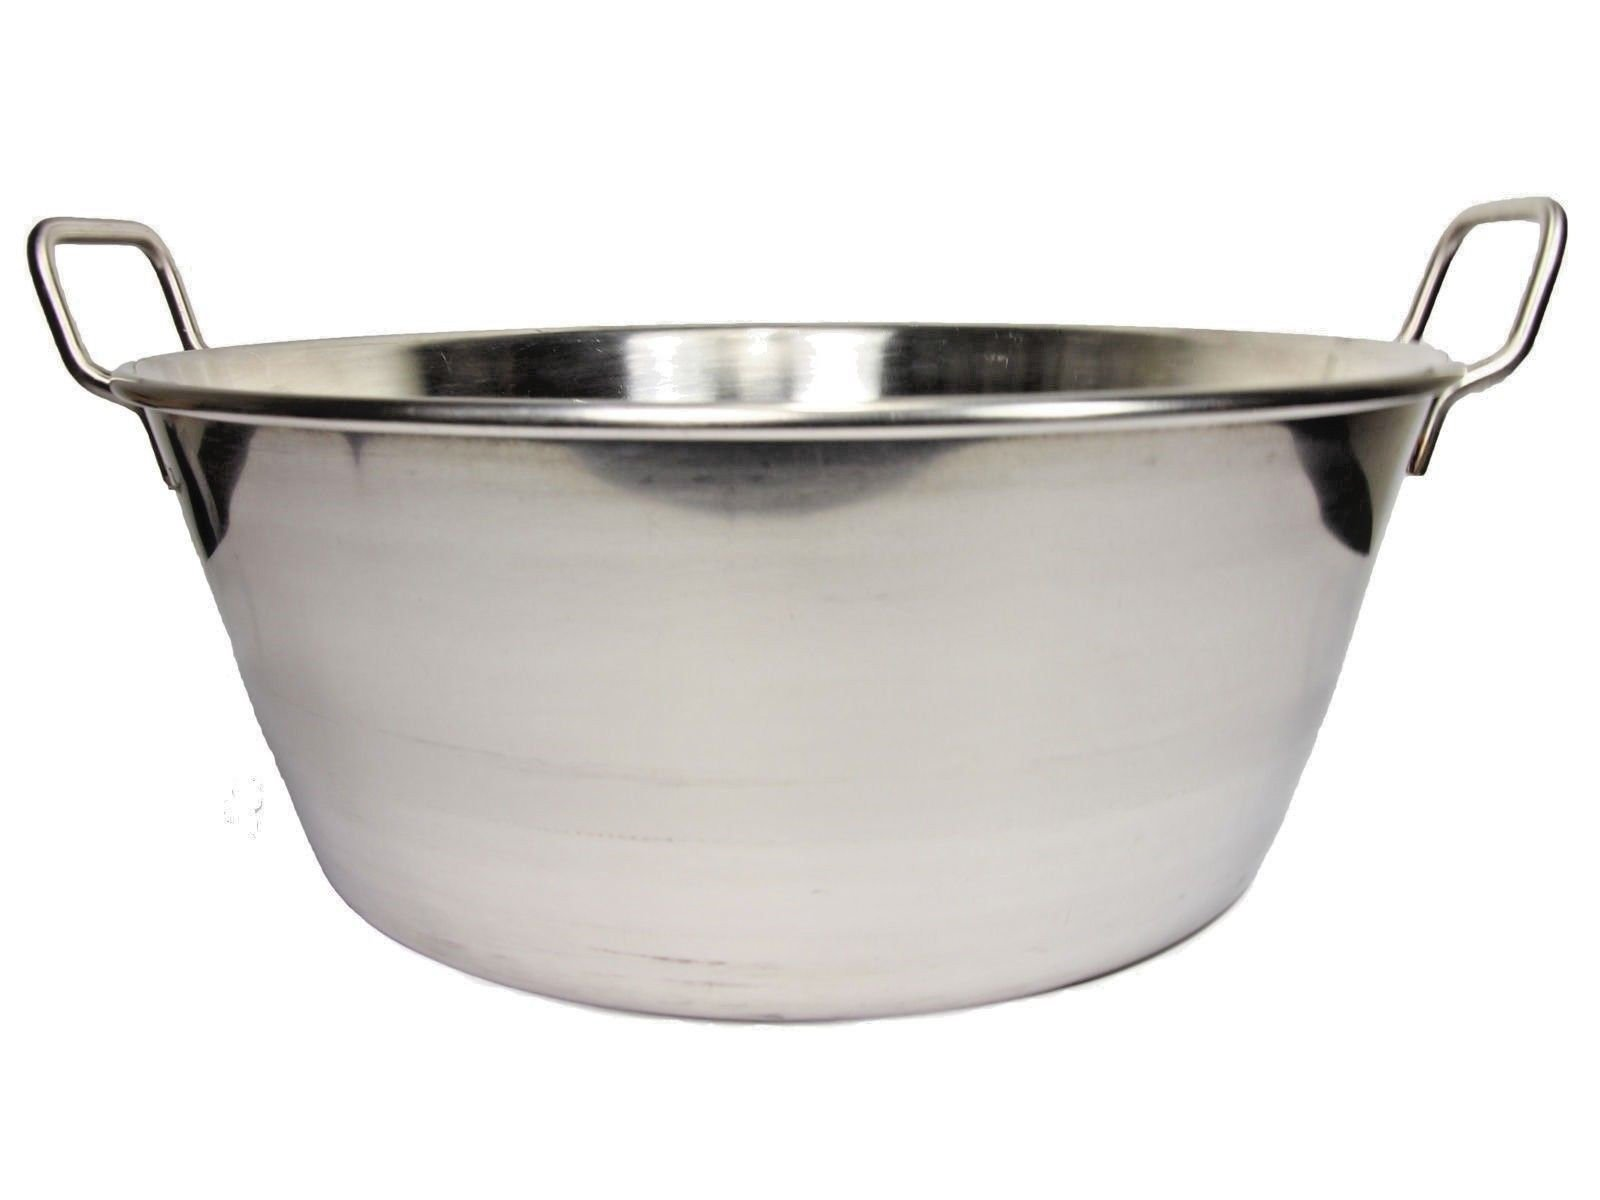 Cazo Para Carnitas 16'' Stainless Steel Heavy Duty Acero Inoxidable Wok comal Fry Mexican Style